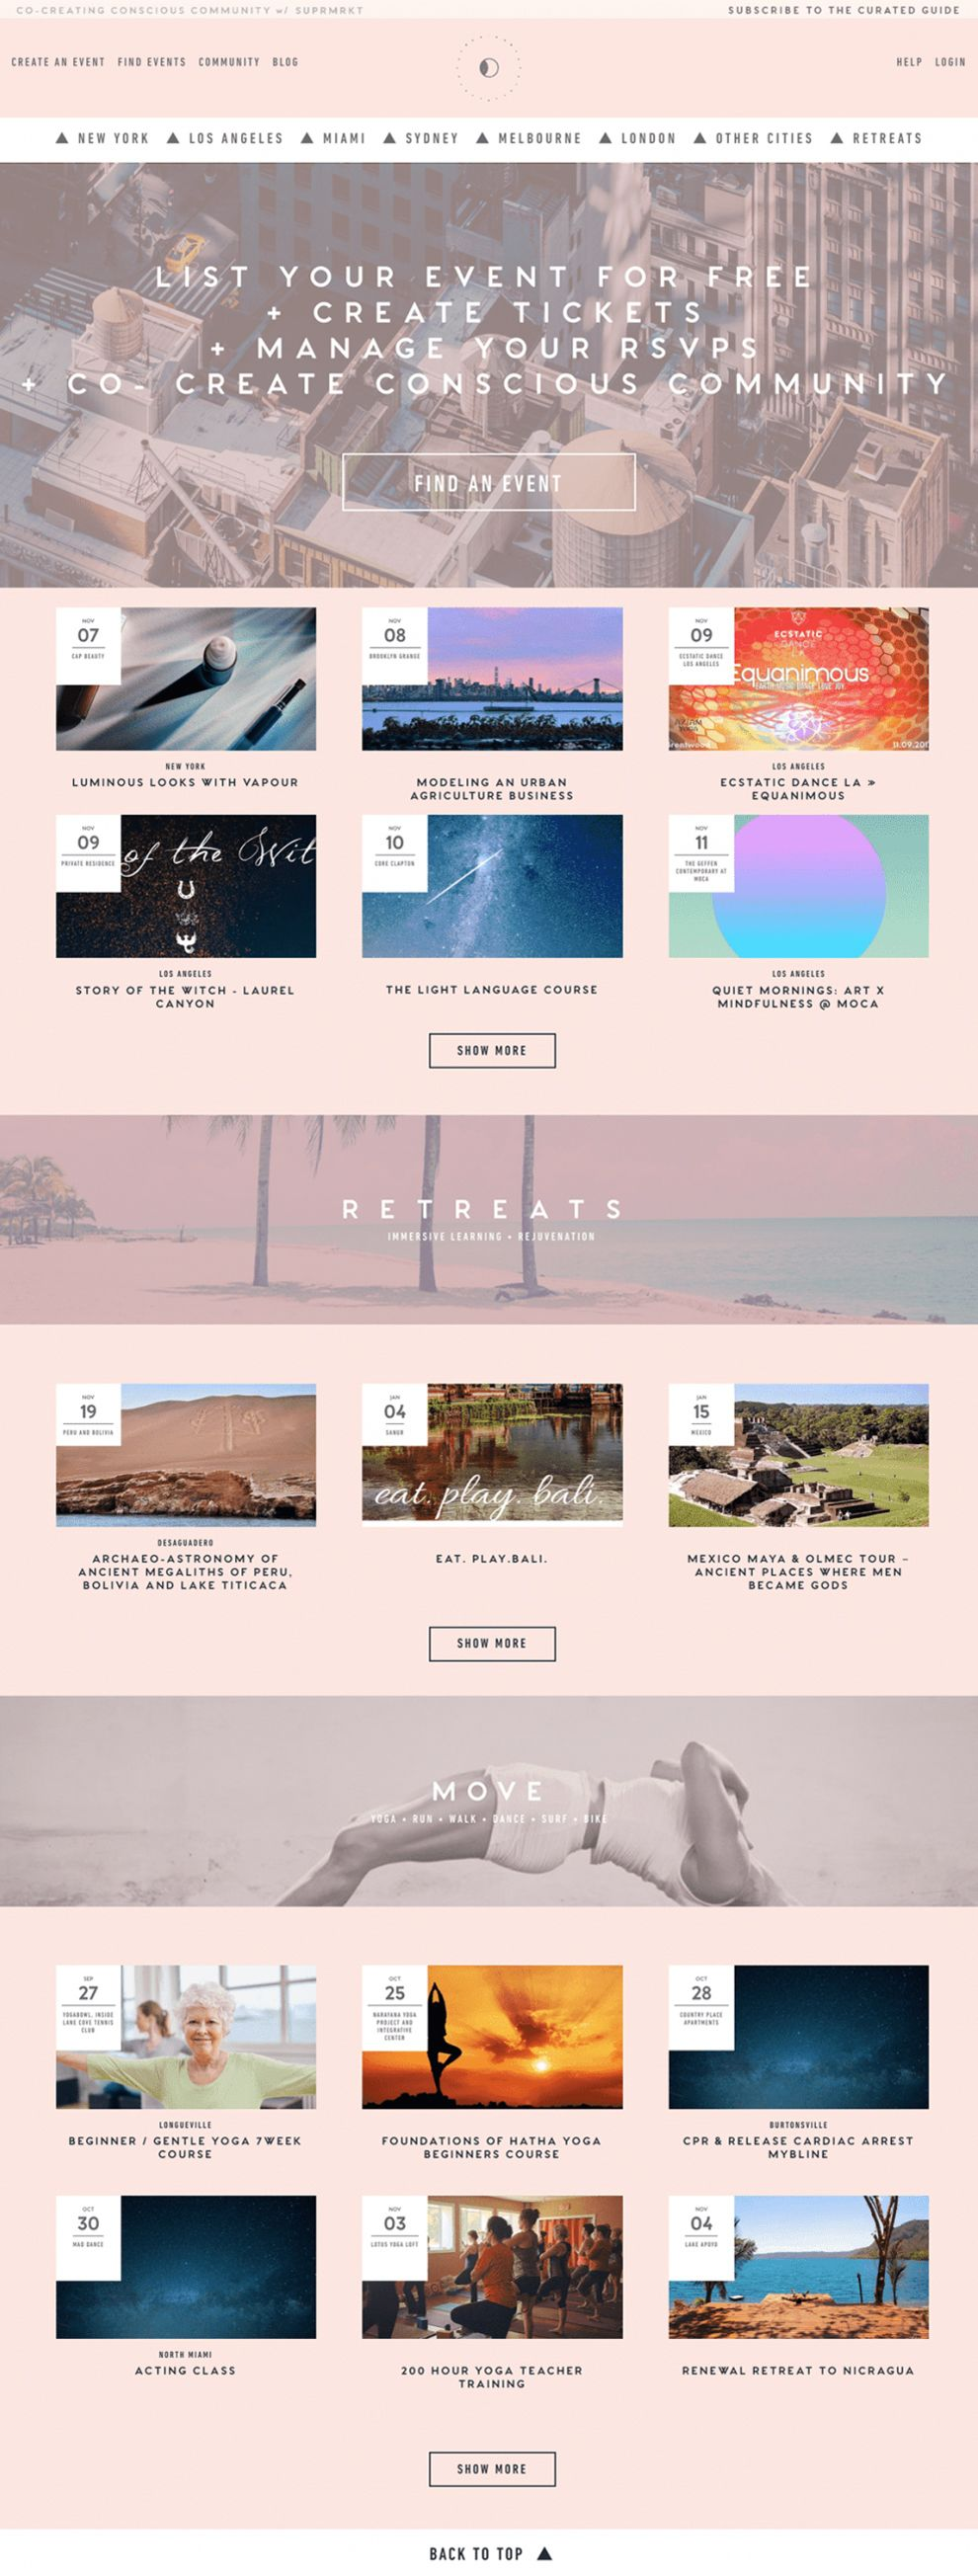 Conscious City Guide Amazing Homepage